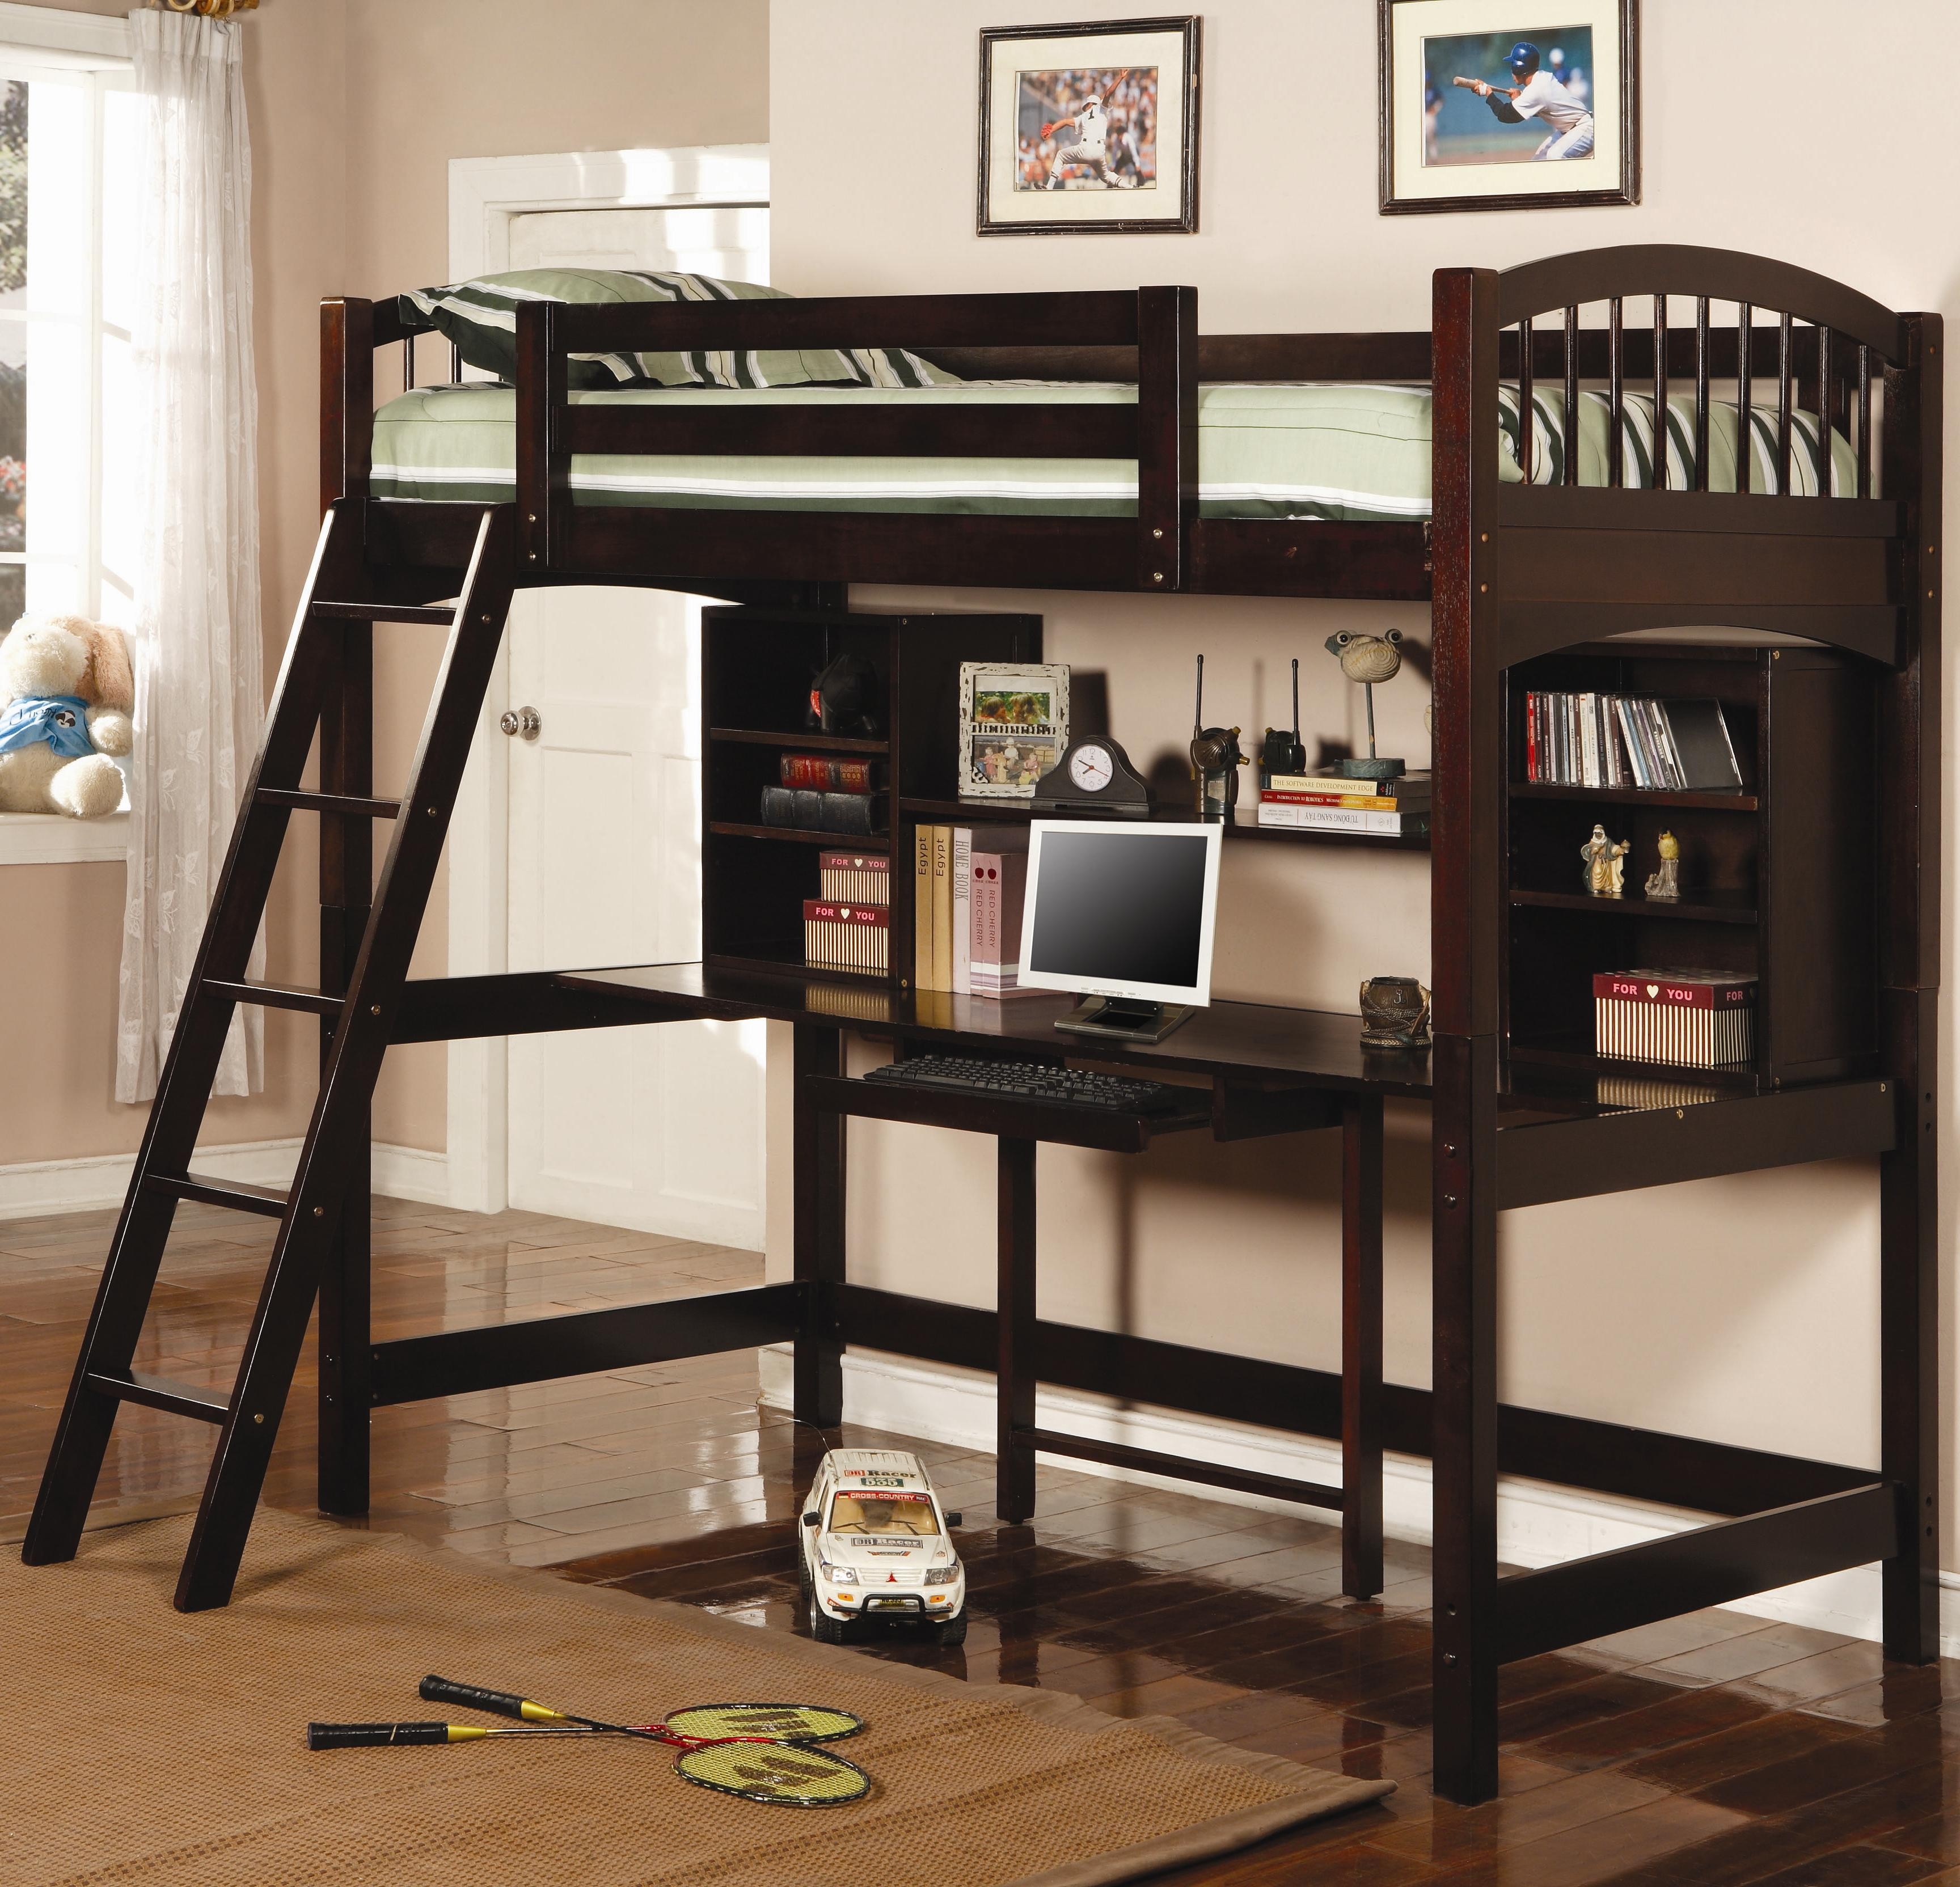 Bunks Twin Workstation Bunk by Coaster at Standard Furniture